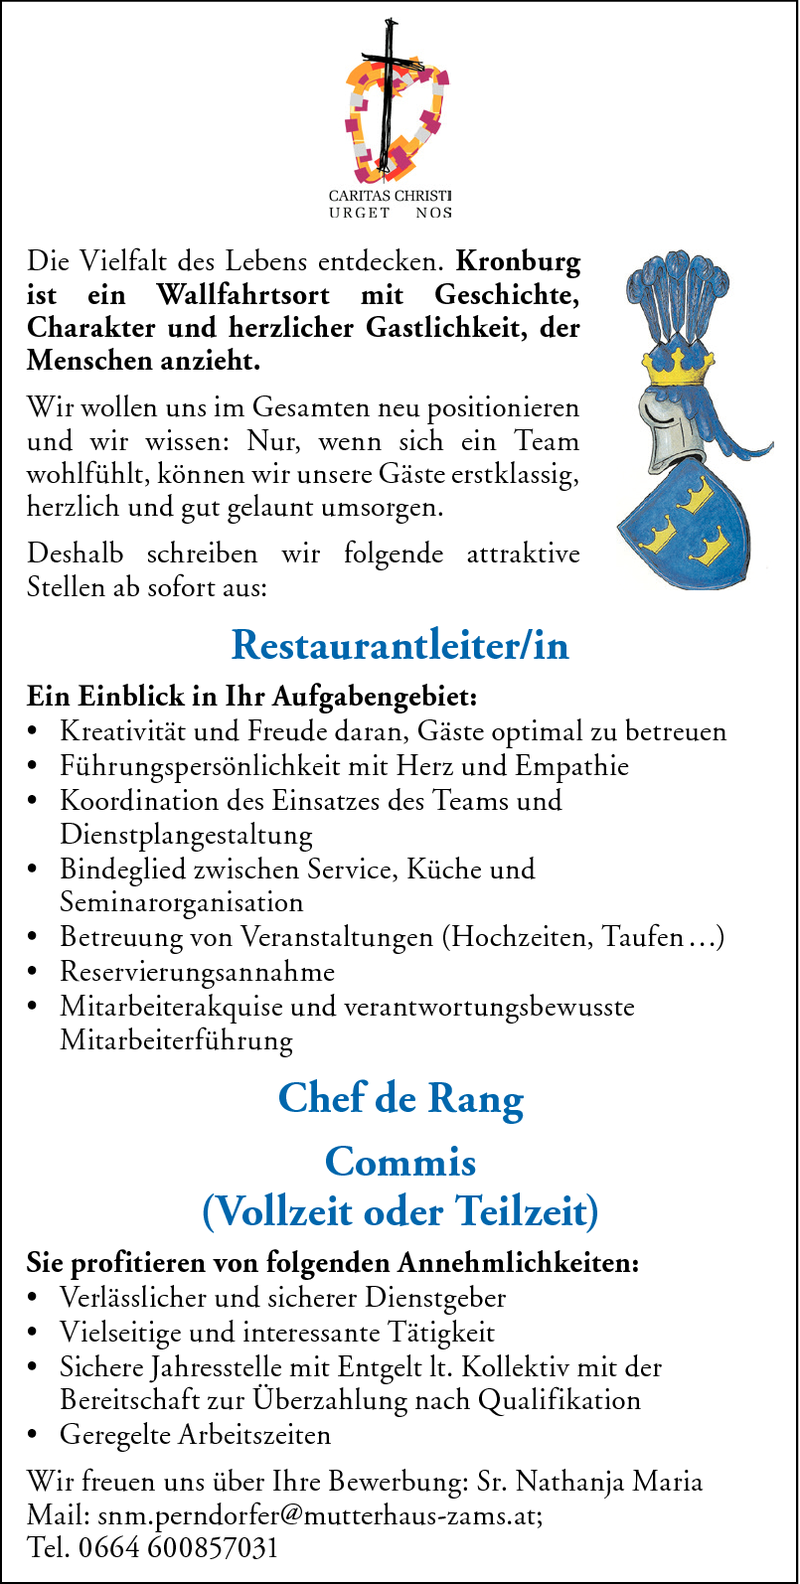 Restaurantleiter/in & Chef de Rang Commis